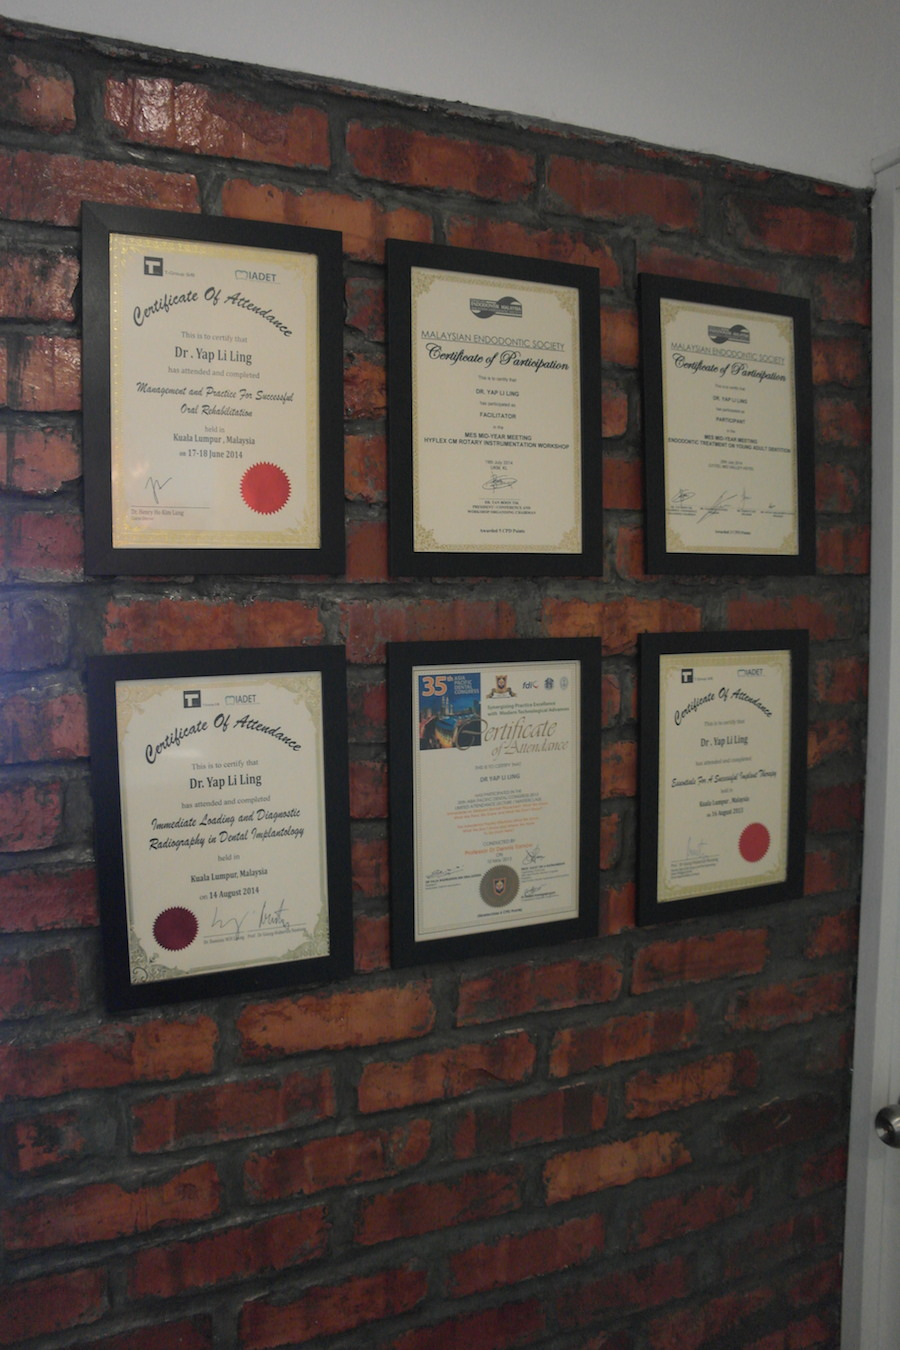 Dental-Image-TTDI-Taman-Tun-Dentistsnearby-wall-of-fame